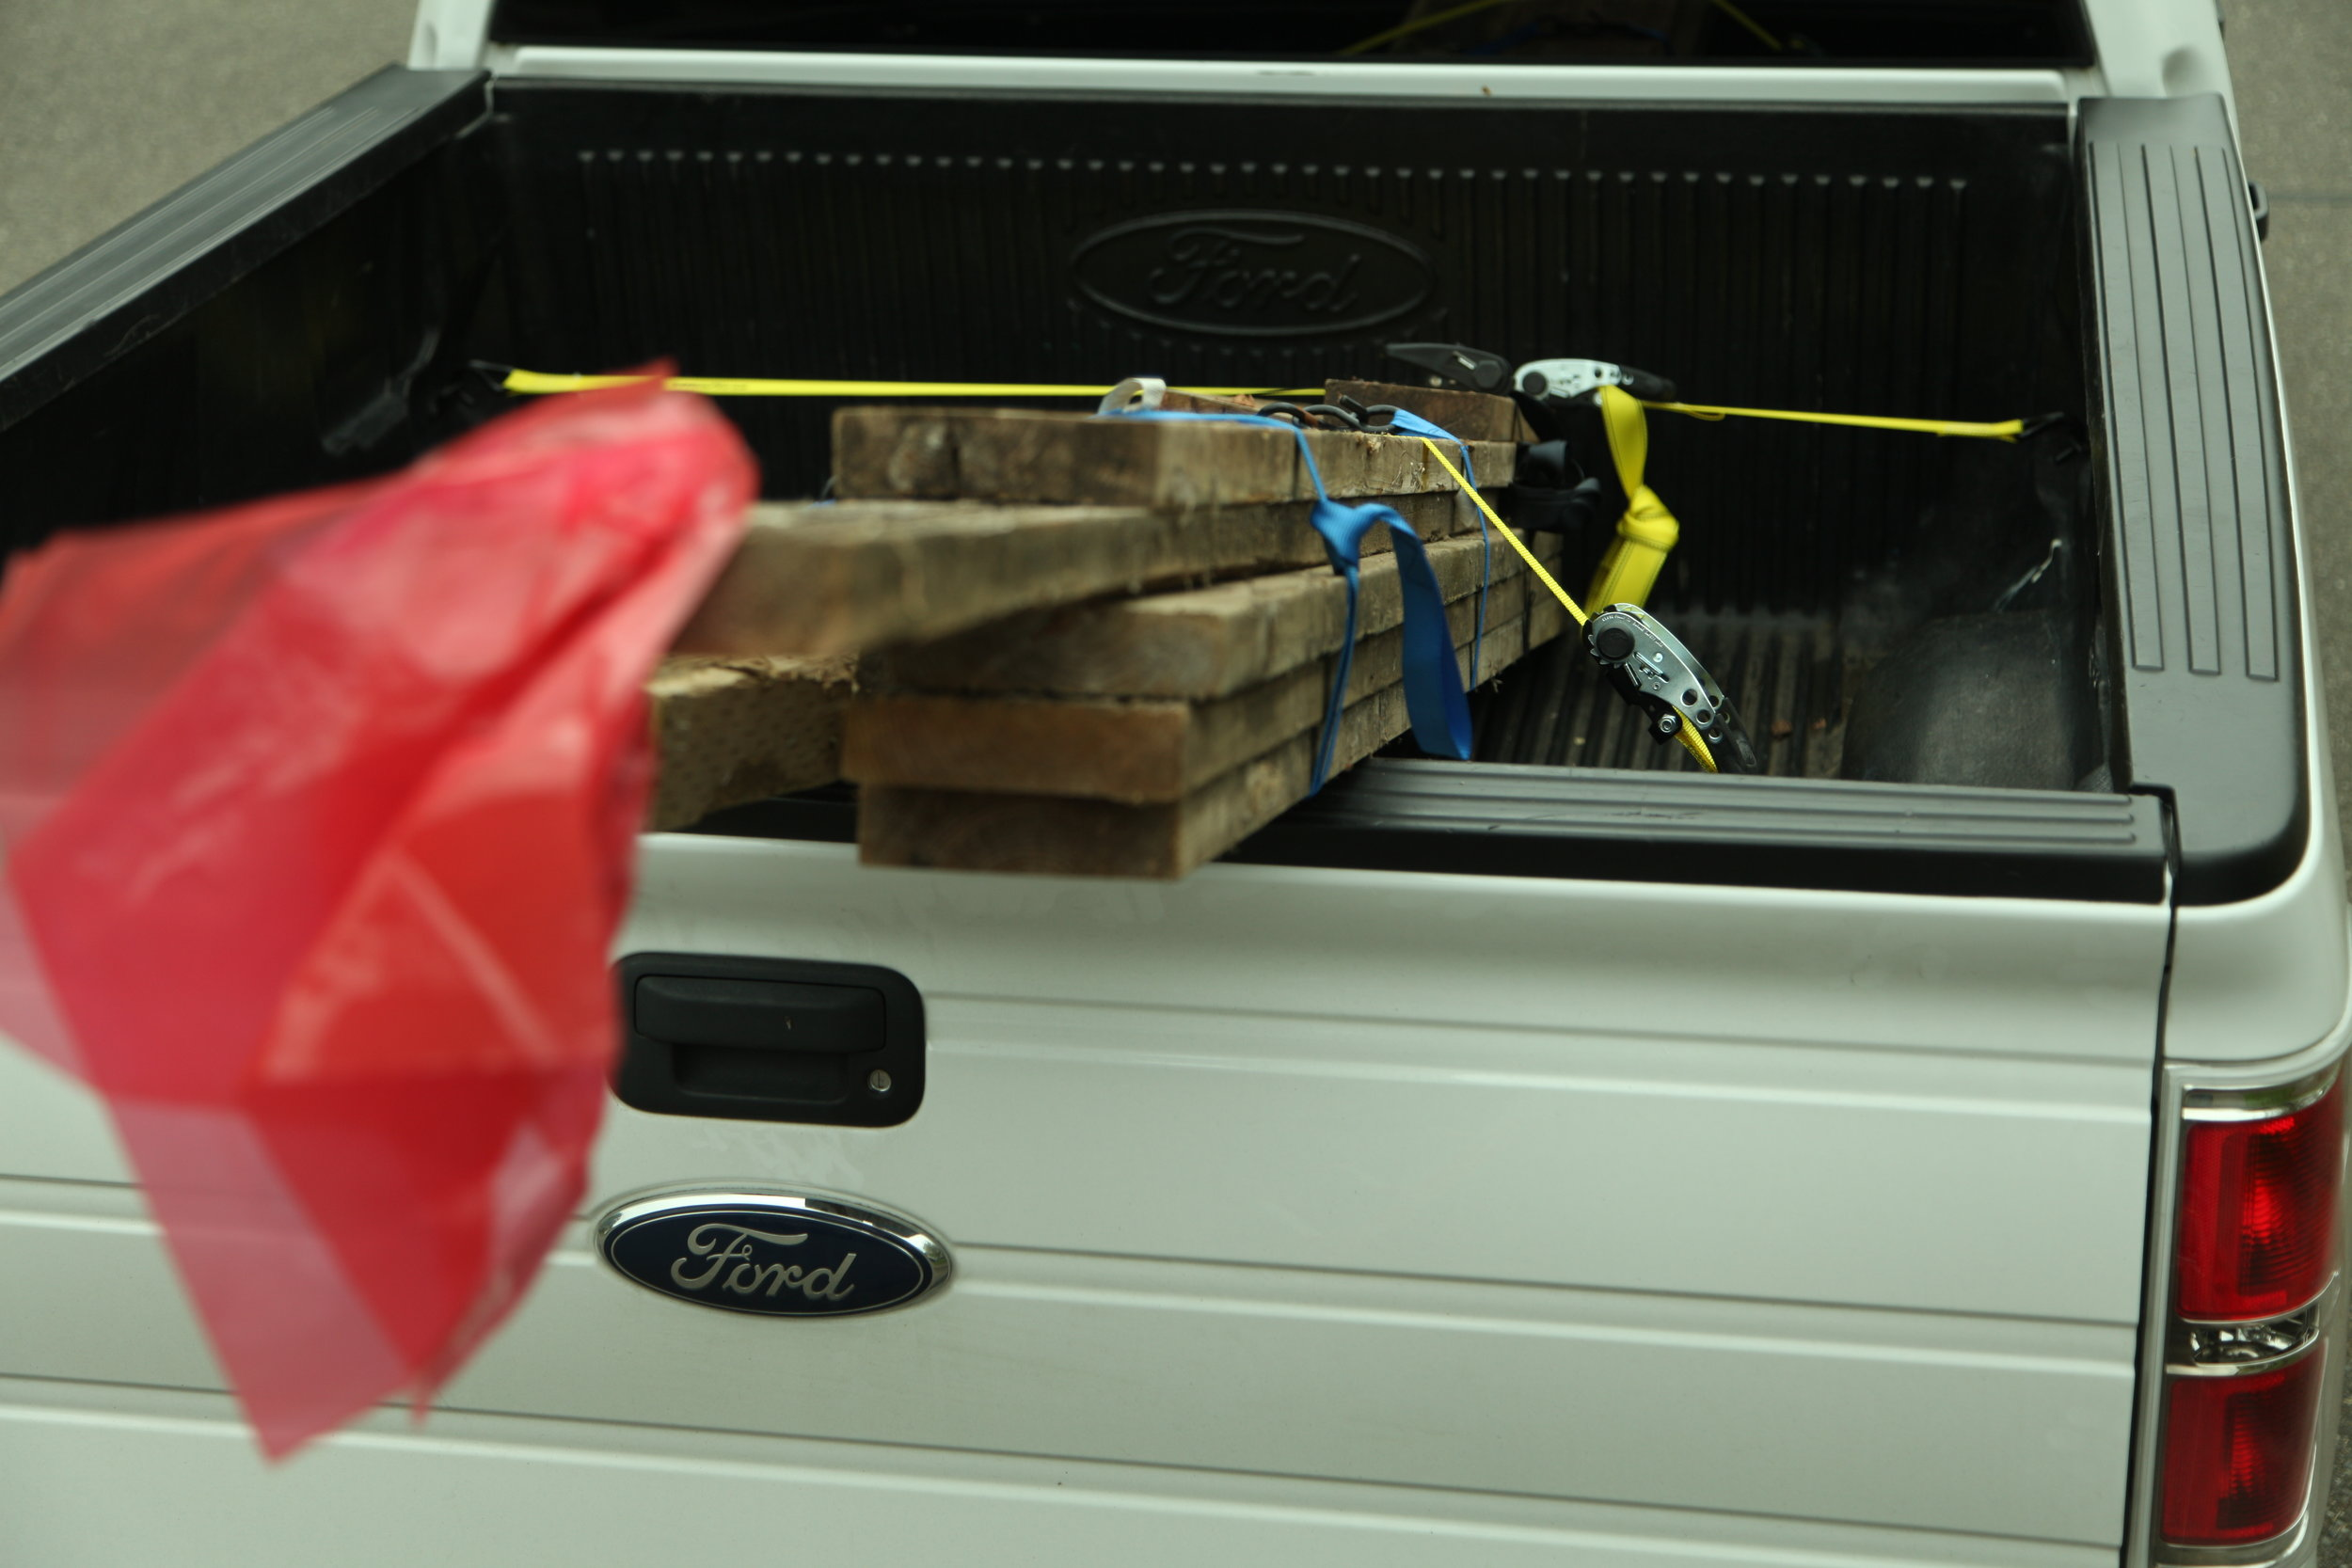 All corners of a load should be tagged with red flags (one foot by one foot), if the load extends four feet beyond the bed of a truck or trailer.